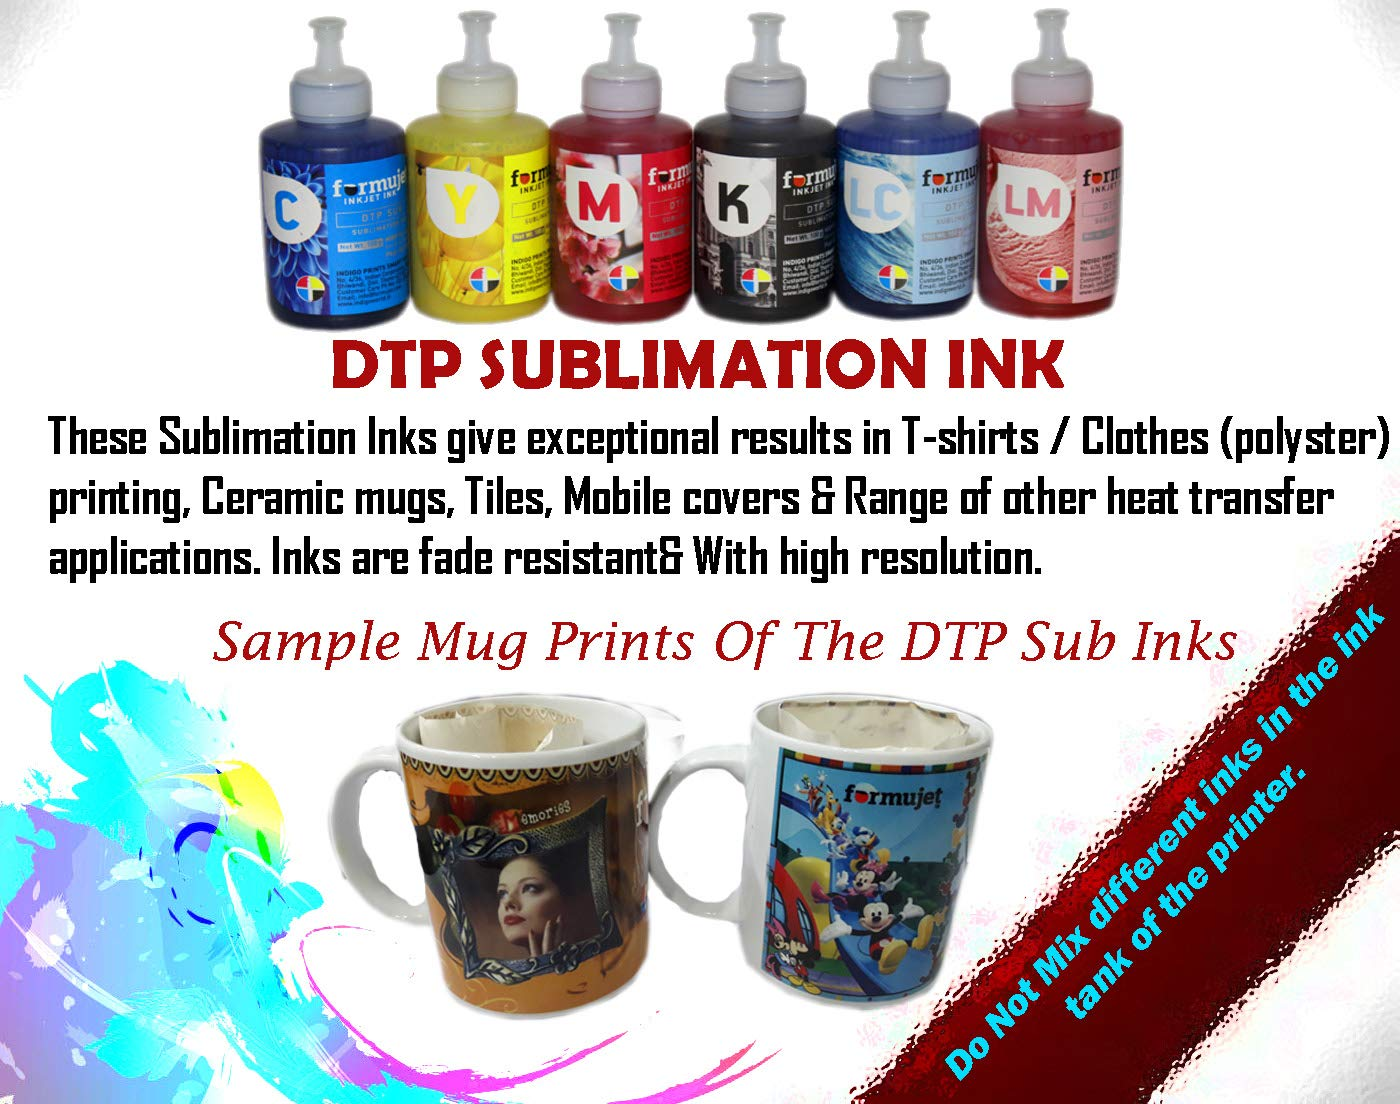 Formujet Sublimation Ink Dtp Sub For Epson Printer L800 L1800 L810 Print Head 1390 New Original L805 And Heat Transfer Printing On Ceramics Clothes6 Colours